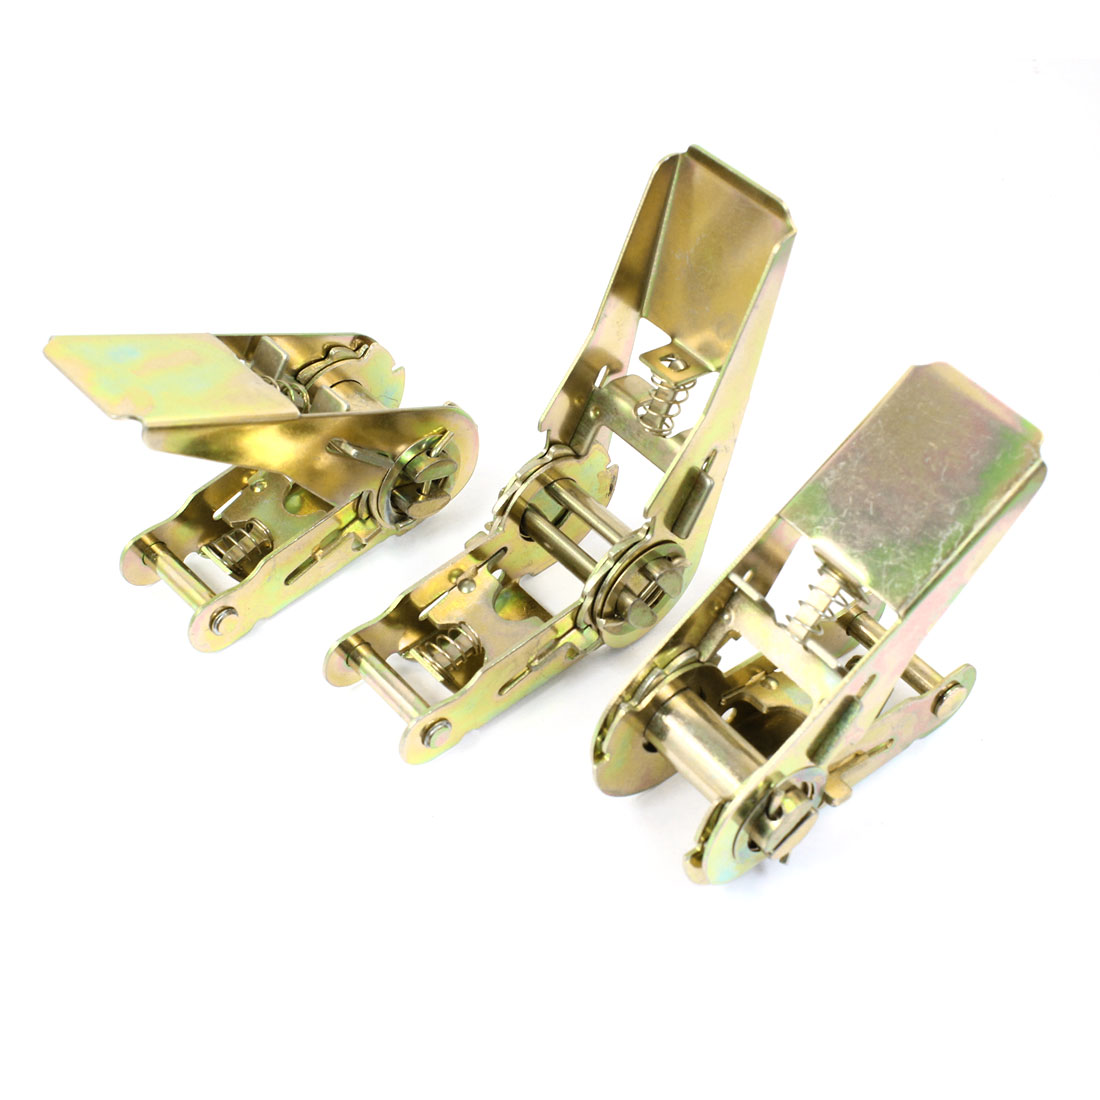 3pcs Bronze Tone Metal Ratchet Buckle for 25mm Width Tie Down Strap